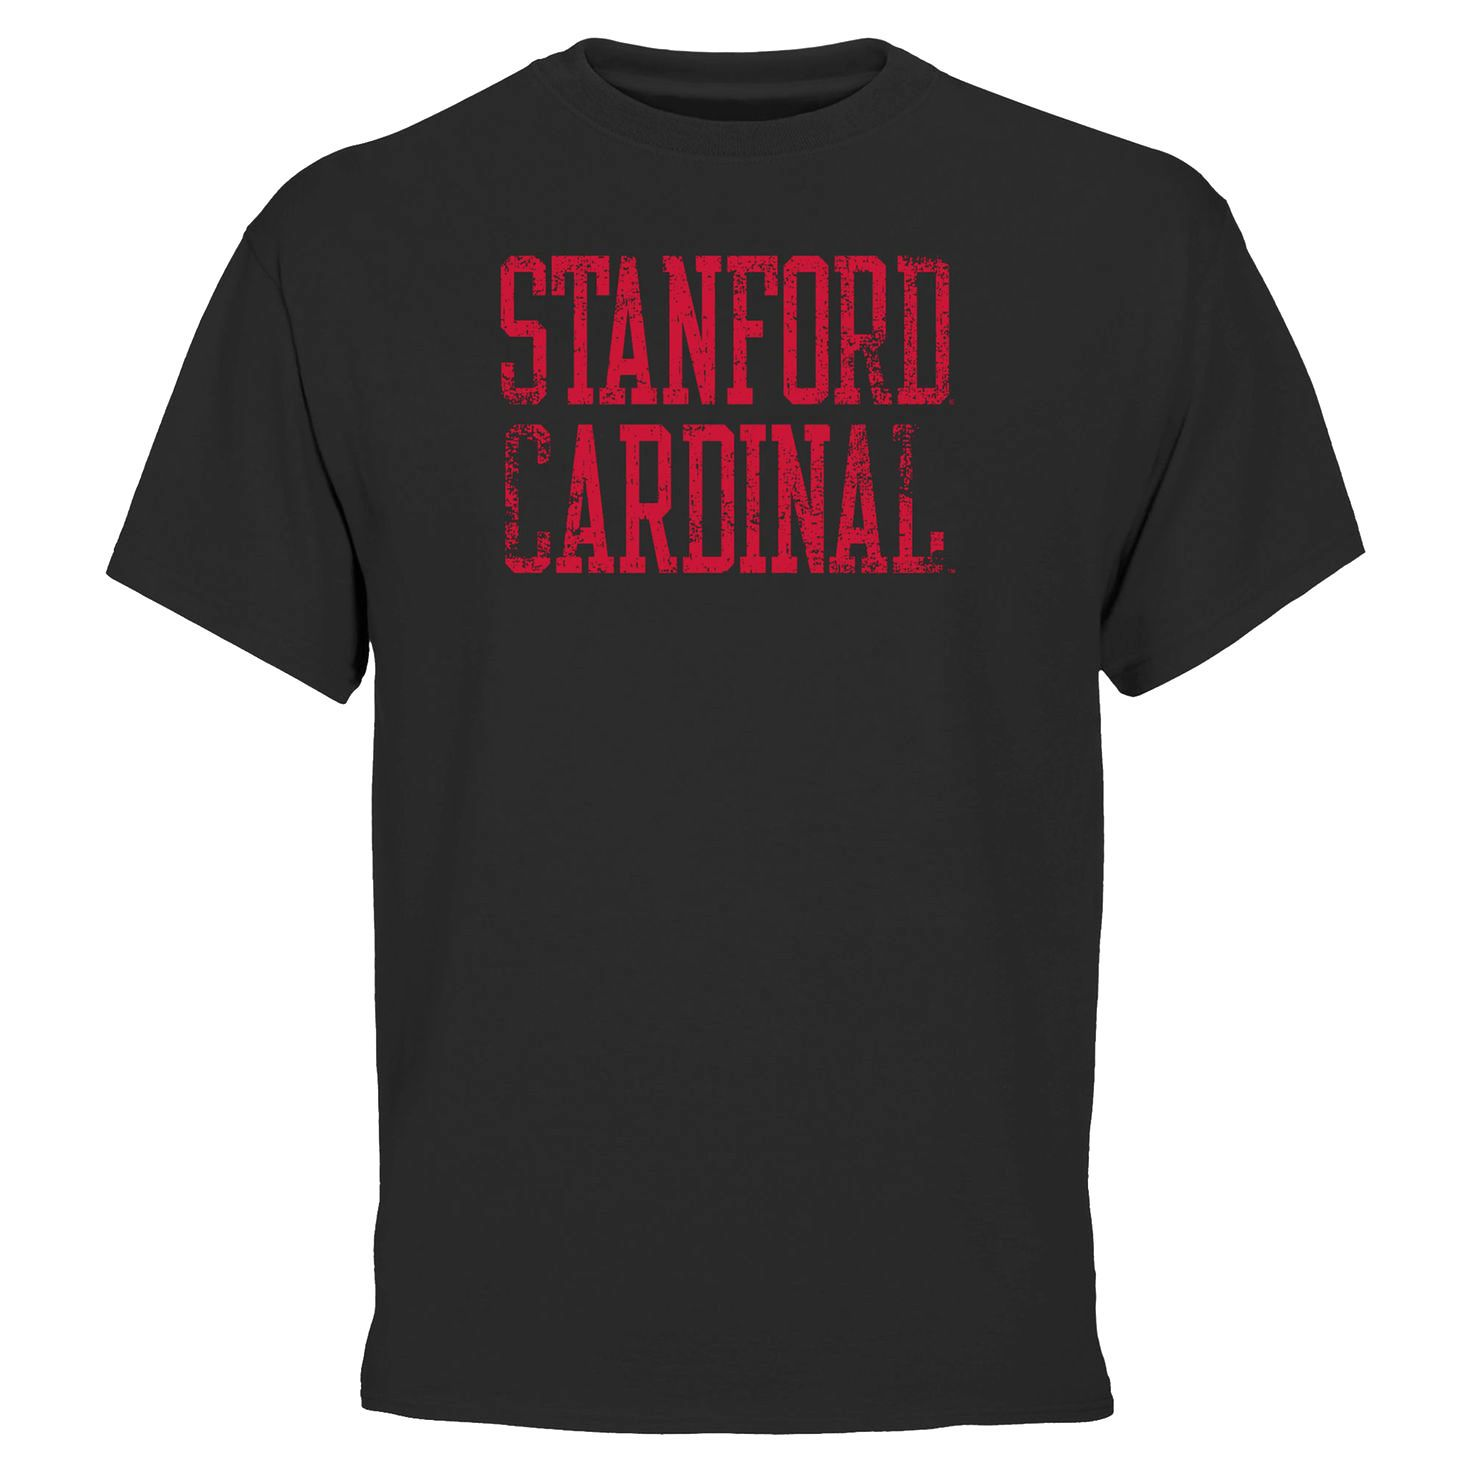 Stanford Cardinal Straight Out T-Shirt - Black - $6.64